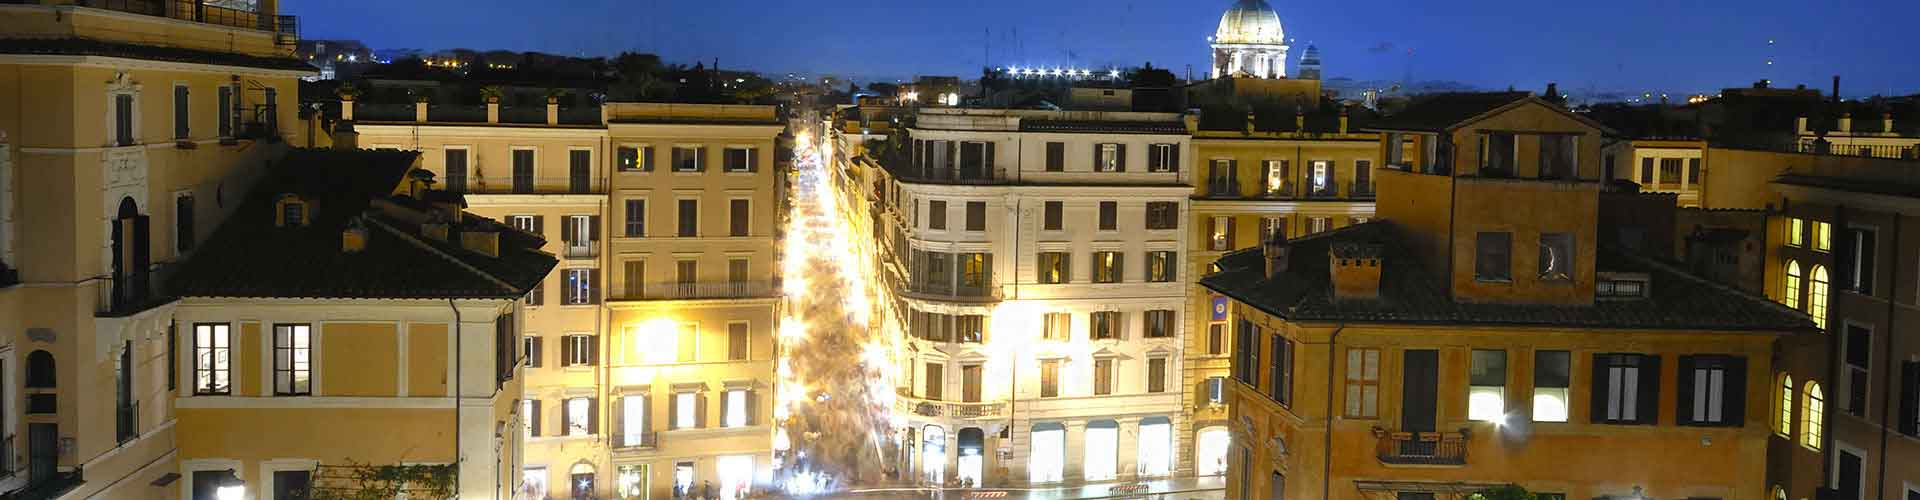 Rome – Hostels close to Via Condotti. Maps for Rome, Photos and Reviews for each hostel in Rome.